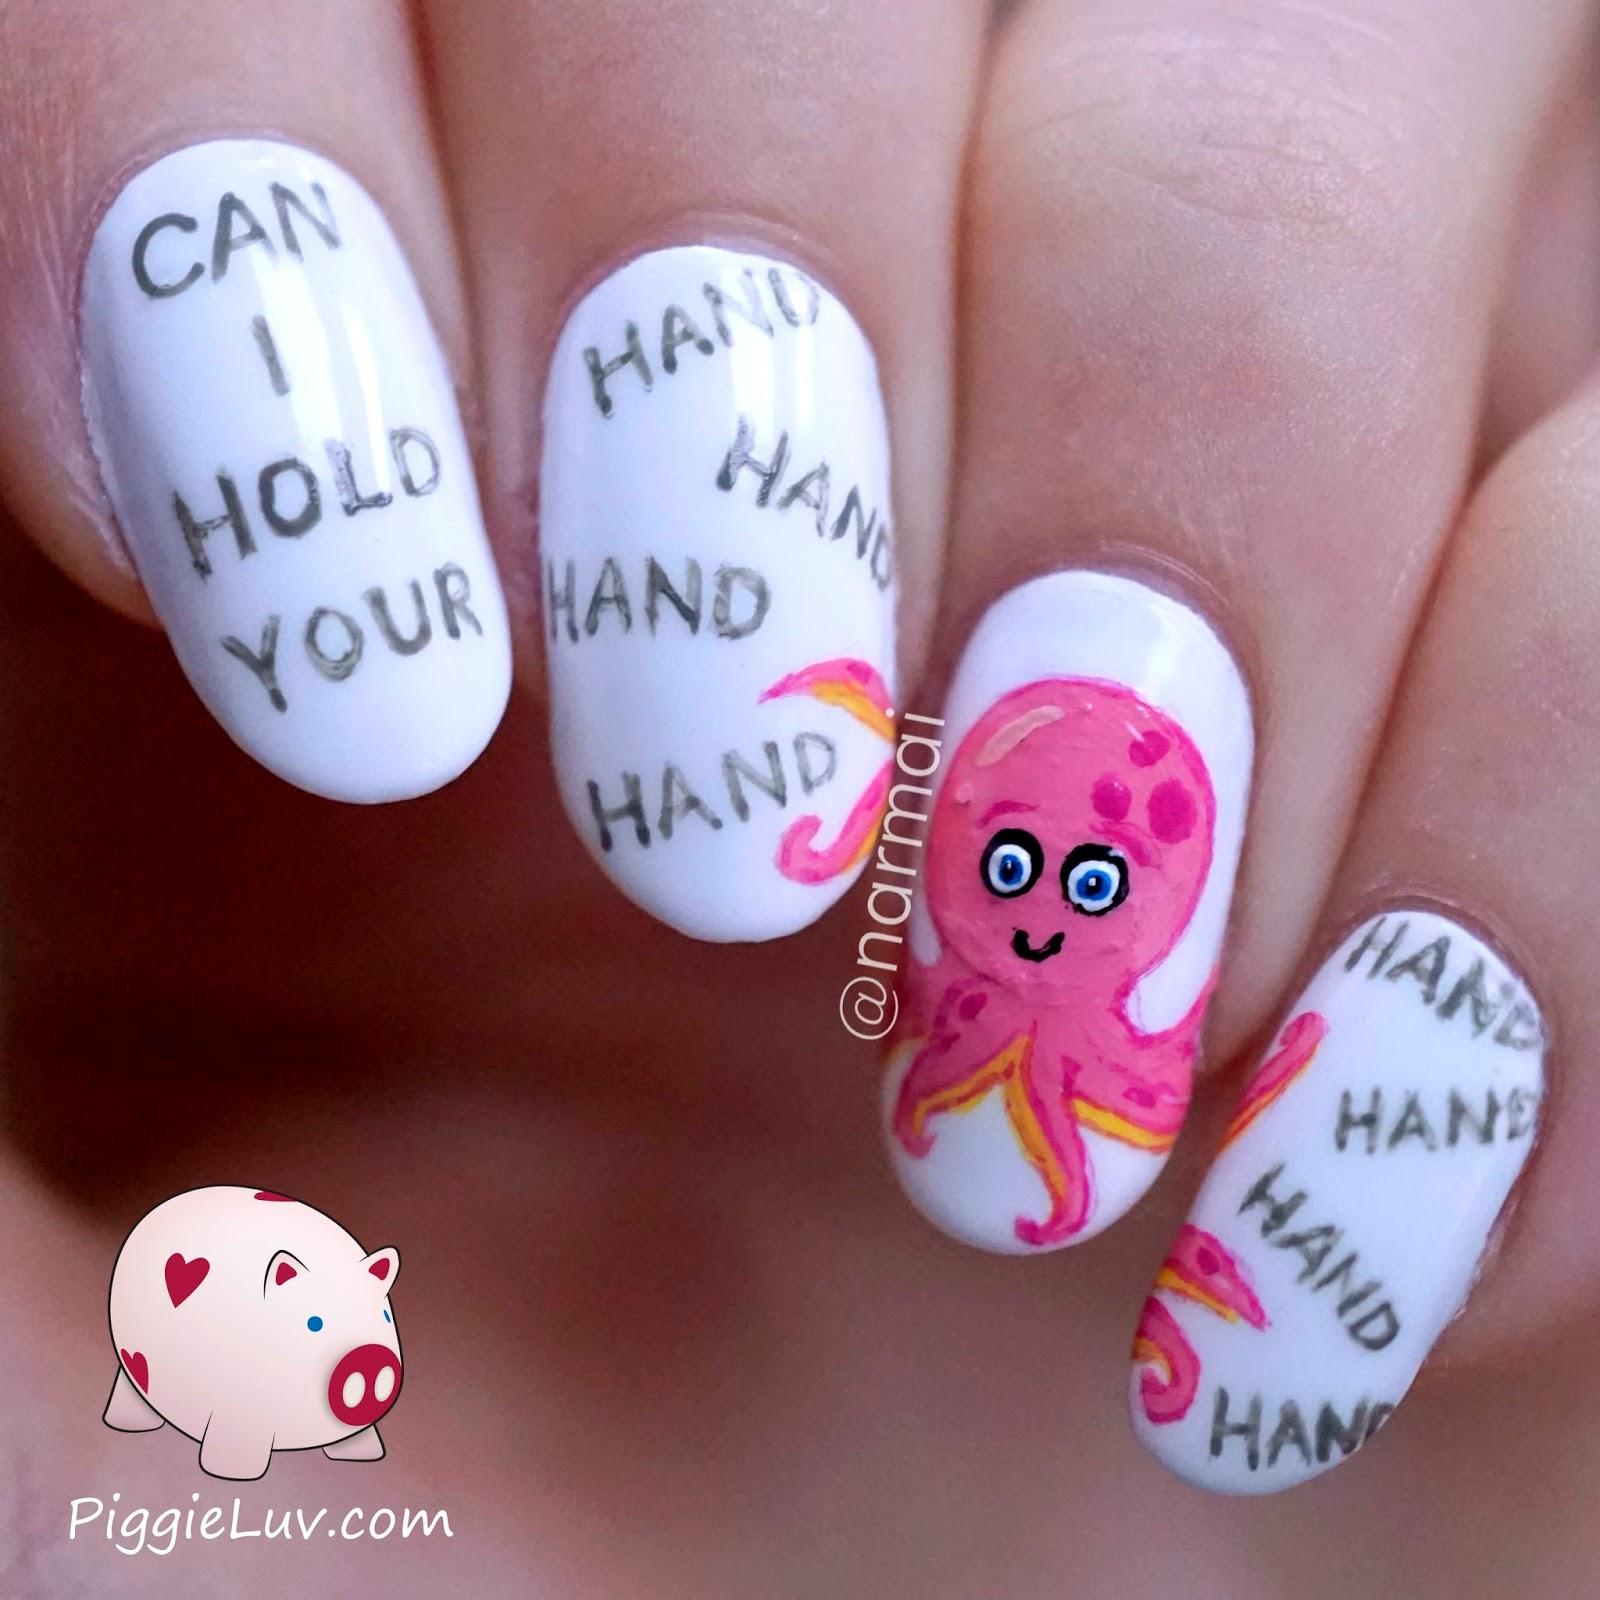 Piggieluv february 2015 can i hold your hand hand hand hand hand hand hand hand hahaha dont you just love valentines day word jokes for nail art prinsesfo Images